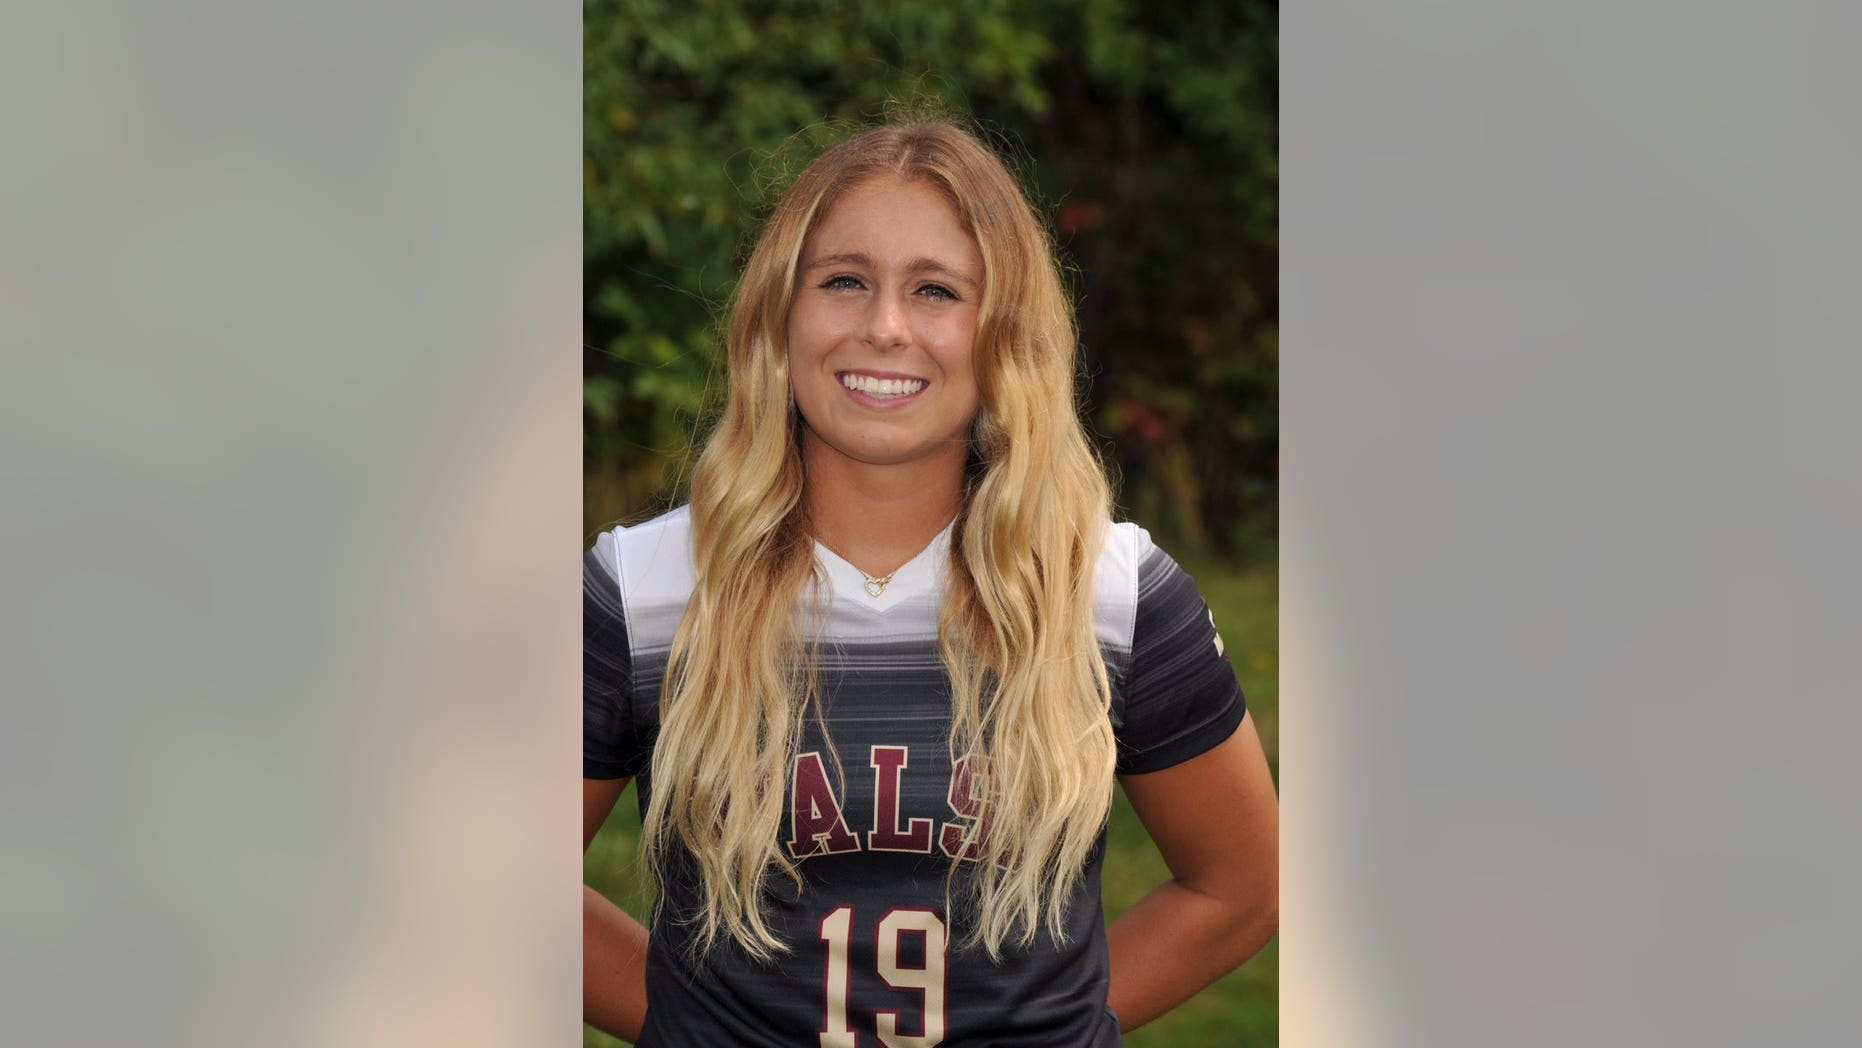 Taylor Ceepo, 22, died after collapsing near the finish line during a marathon in Cleveland on Sunday.